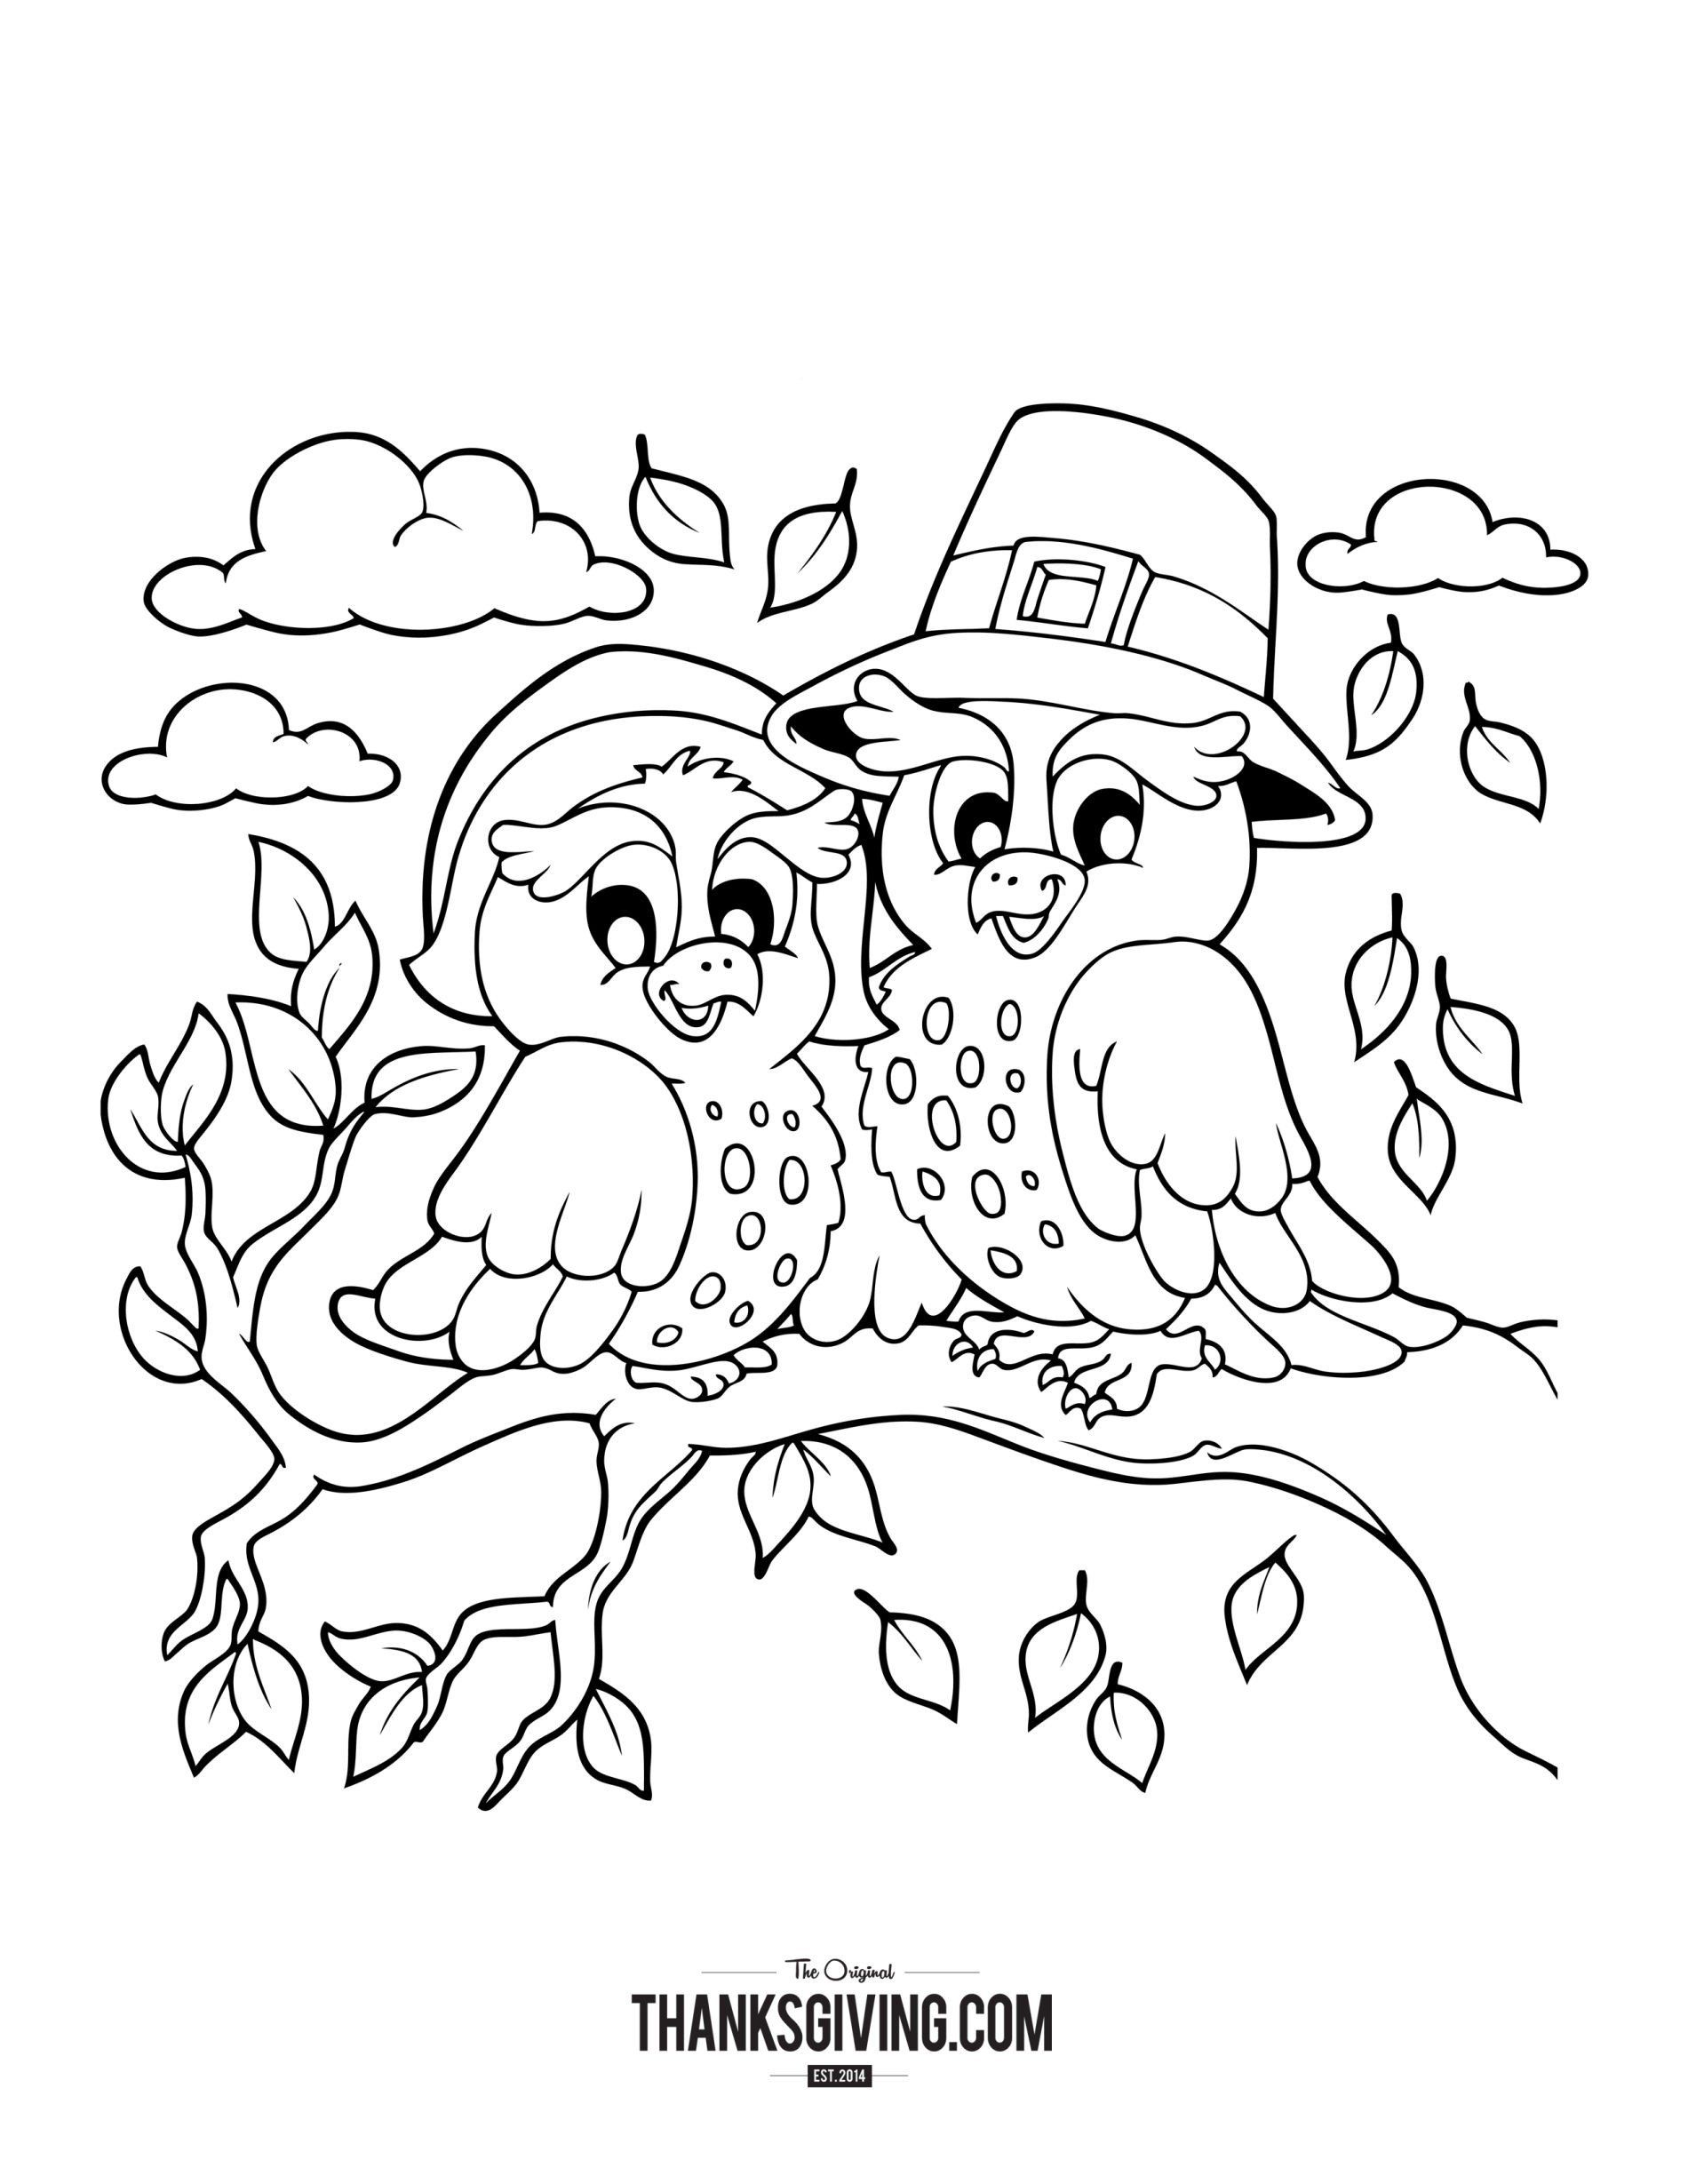 Kid Thanksgiving Coloring Page Thanksgiving Coloring Pages